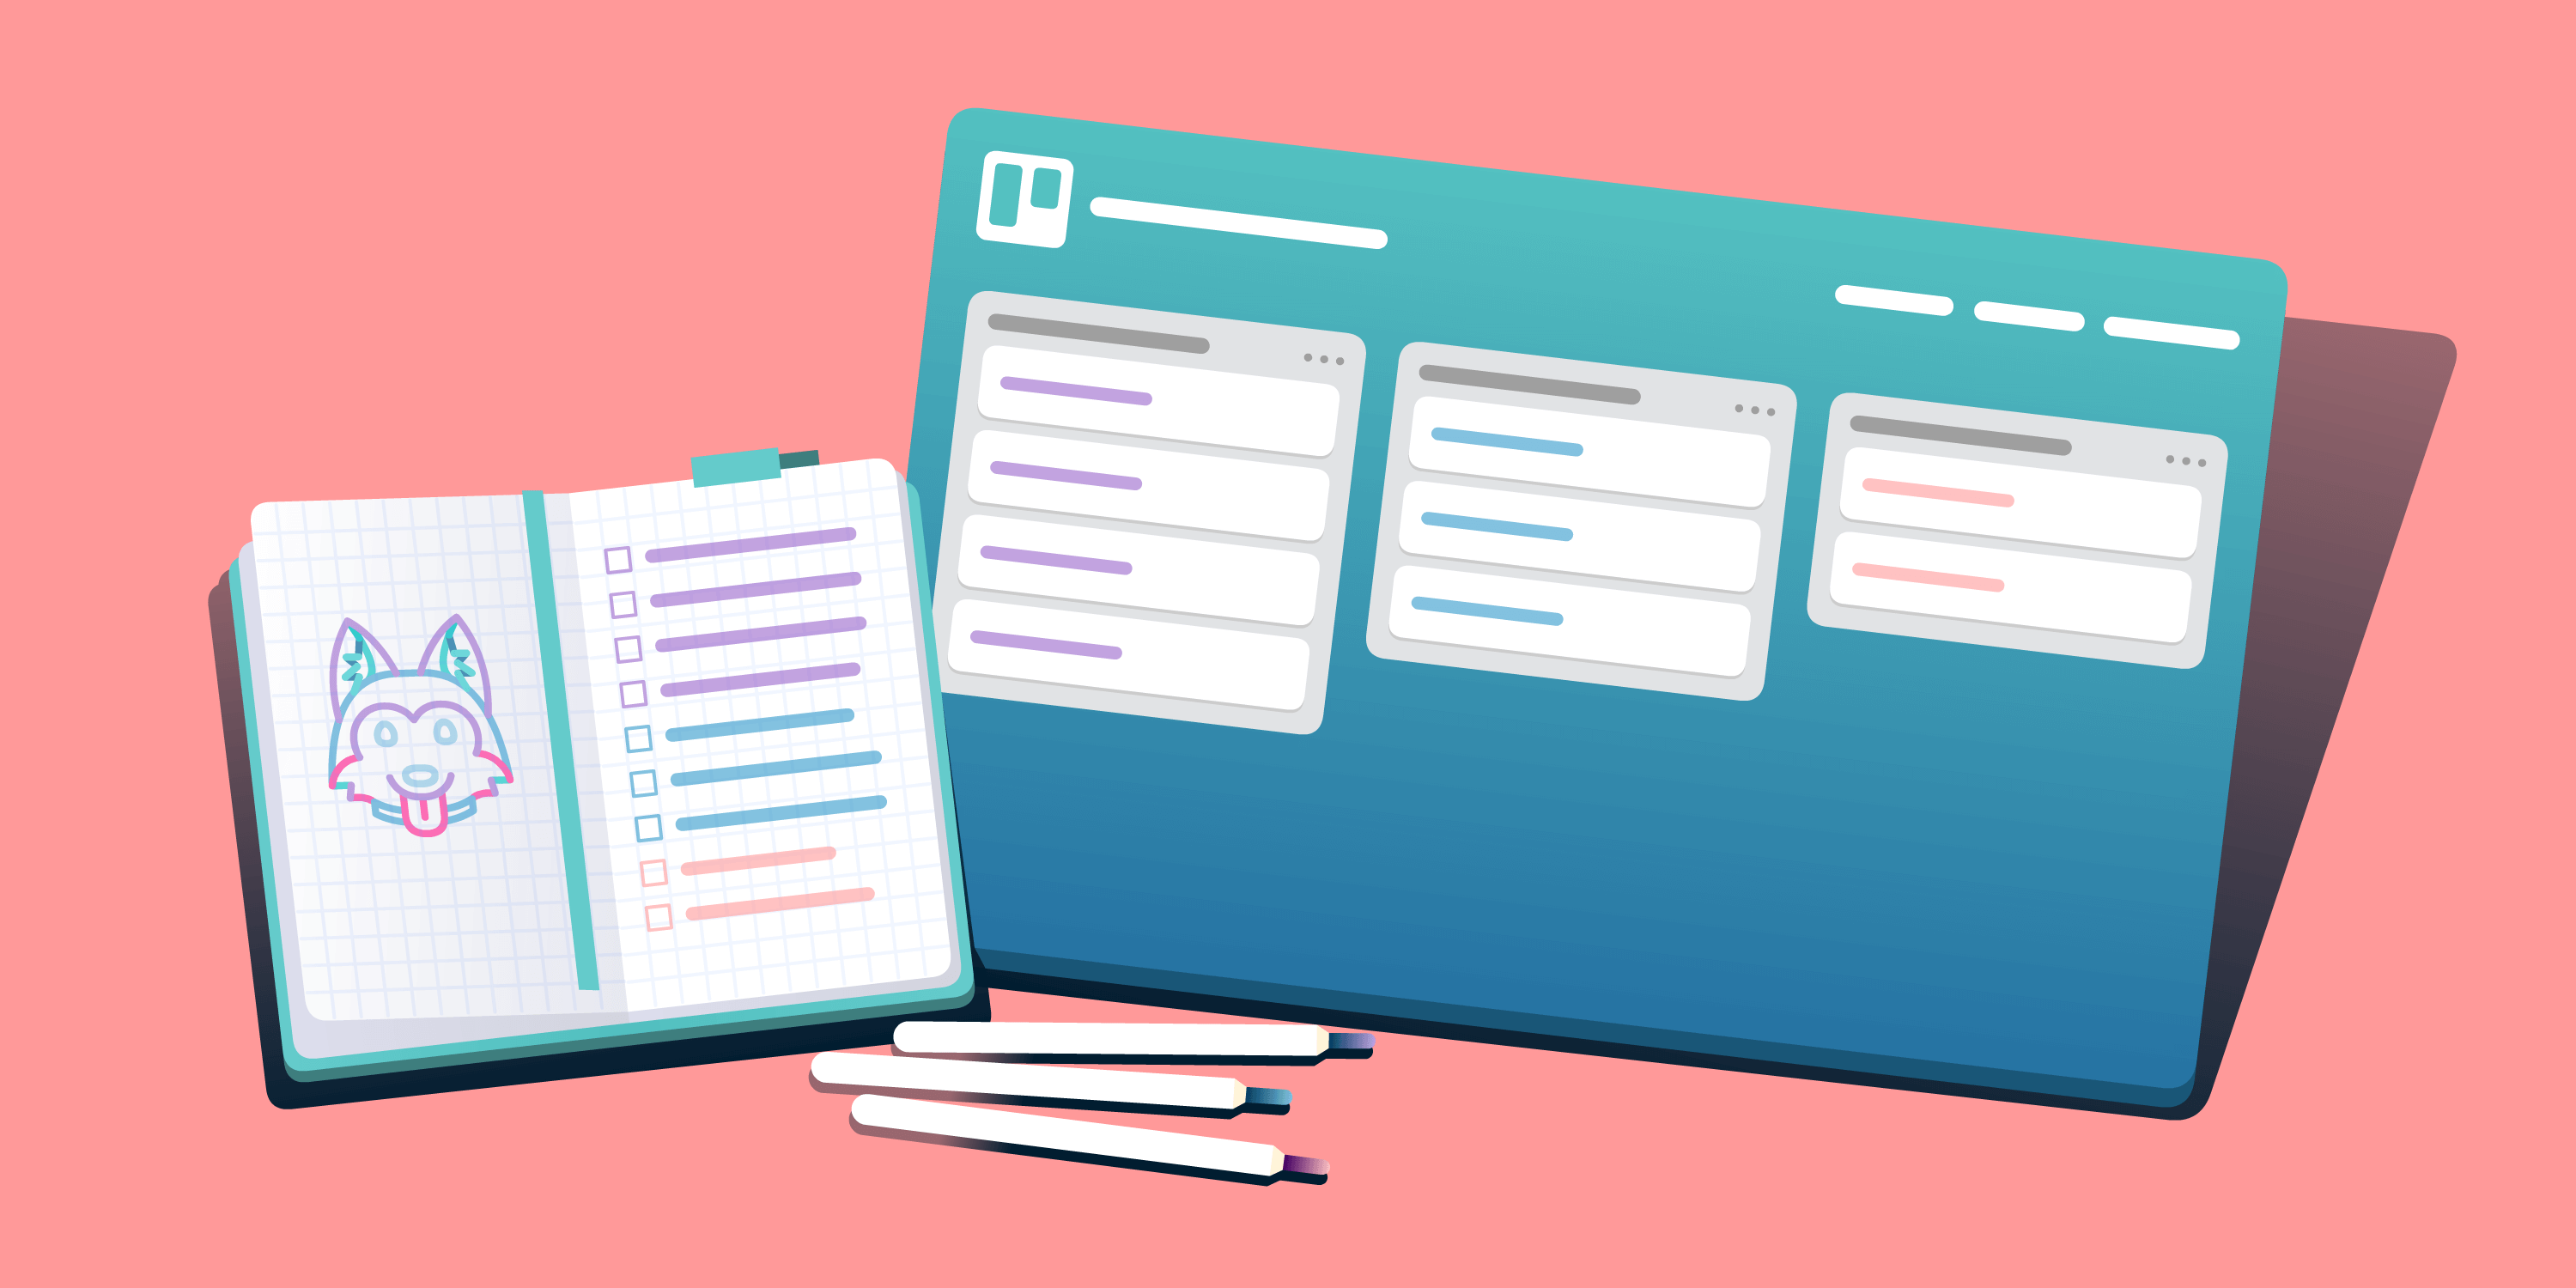 How To Bullet Journal Using A Trello Board